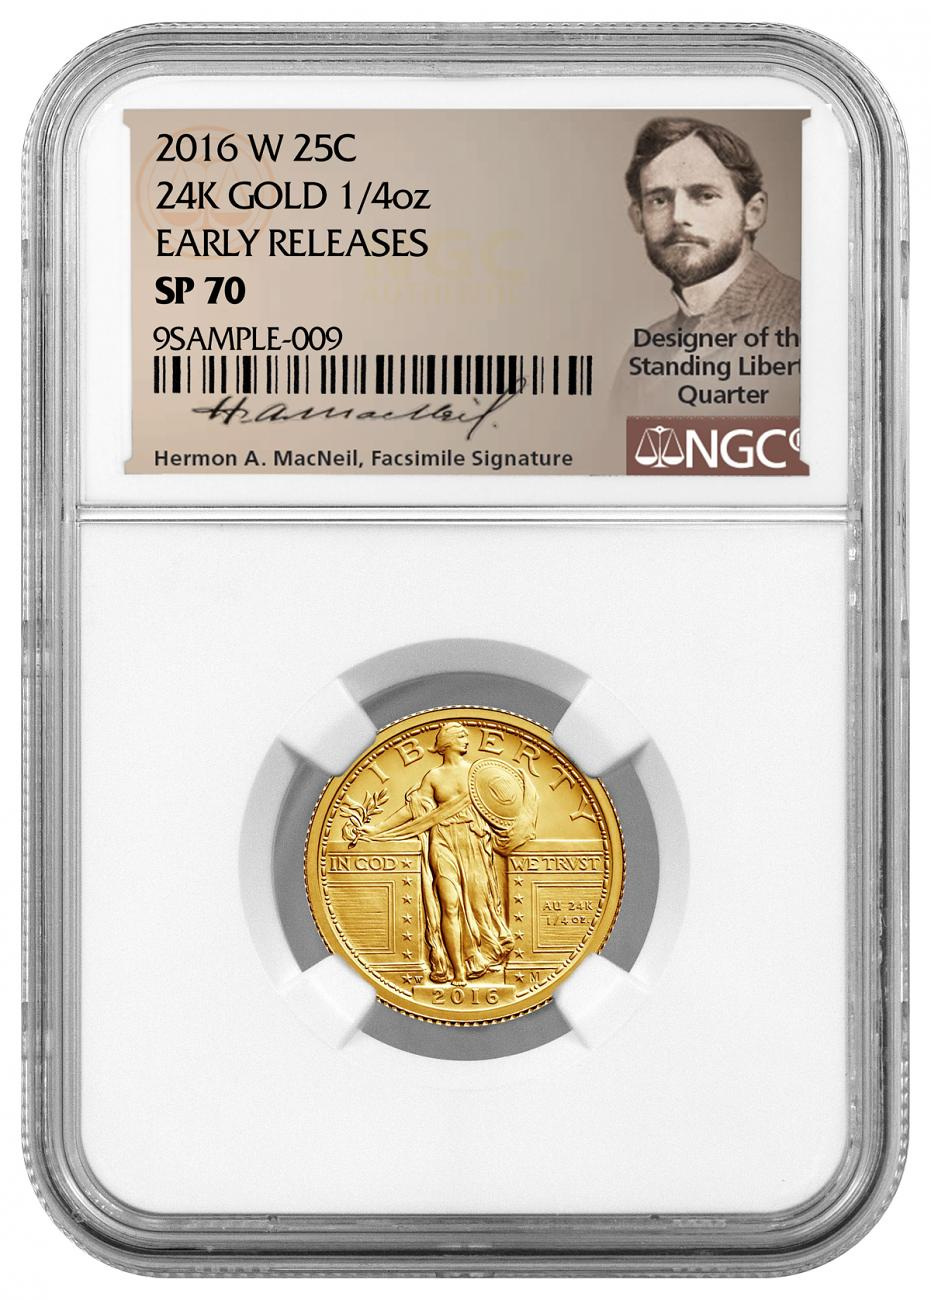 2016-W 1/4 oz. Gold Standing Liberty Quarter Centennial - NGC SP70 Early Releases (Exclusive Hermon MacNeil Label)